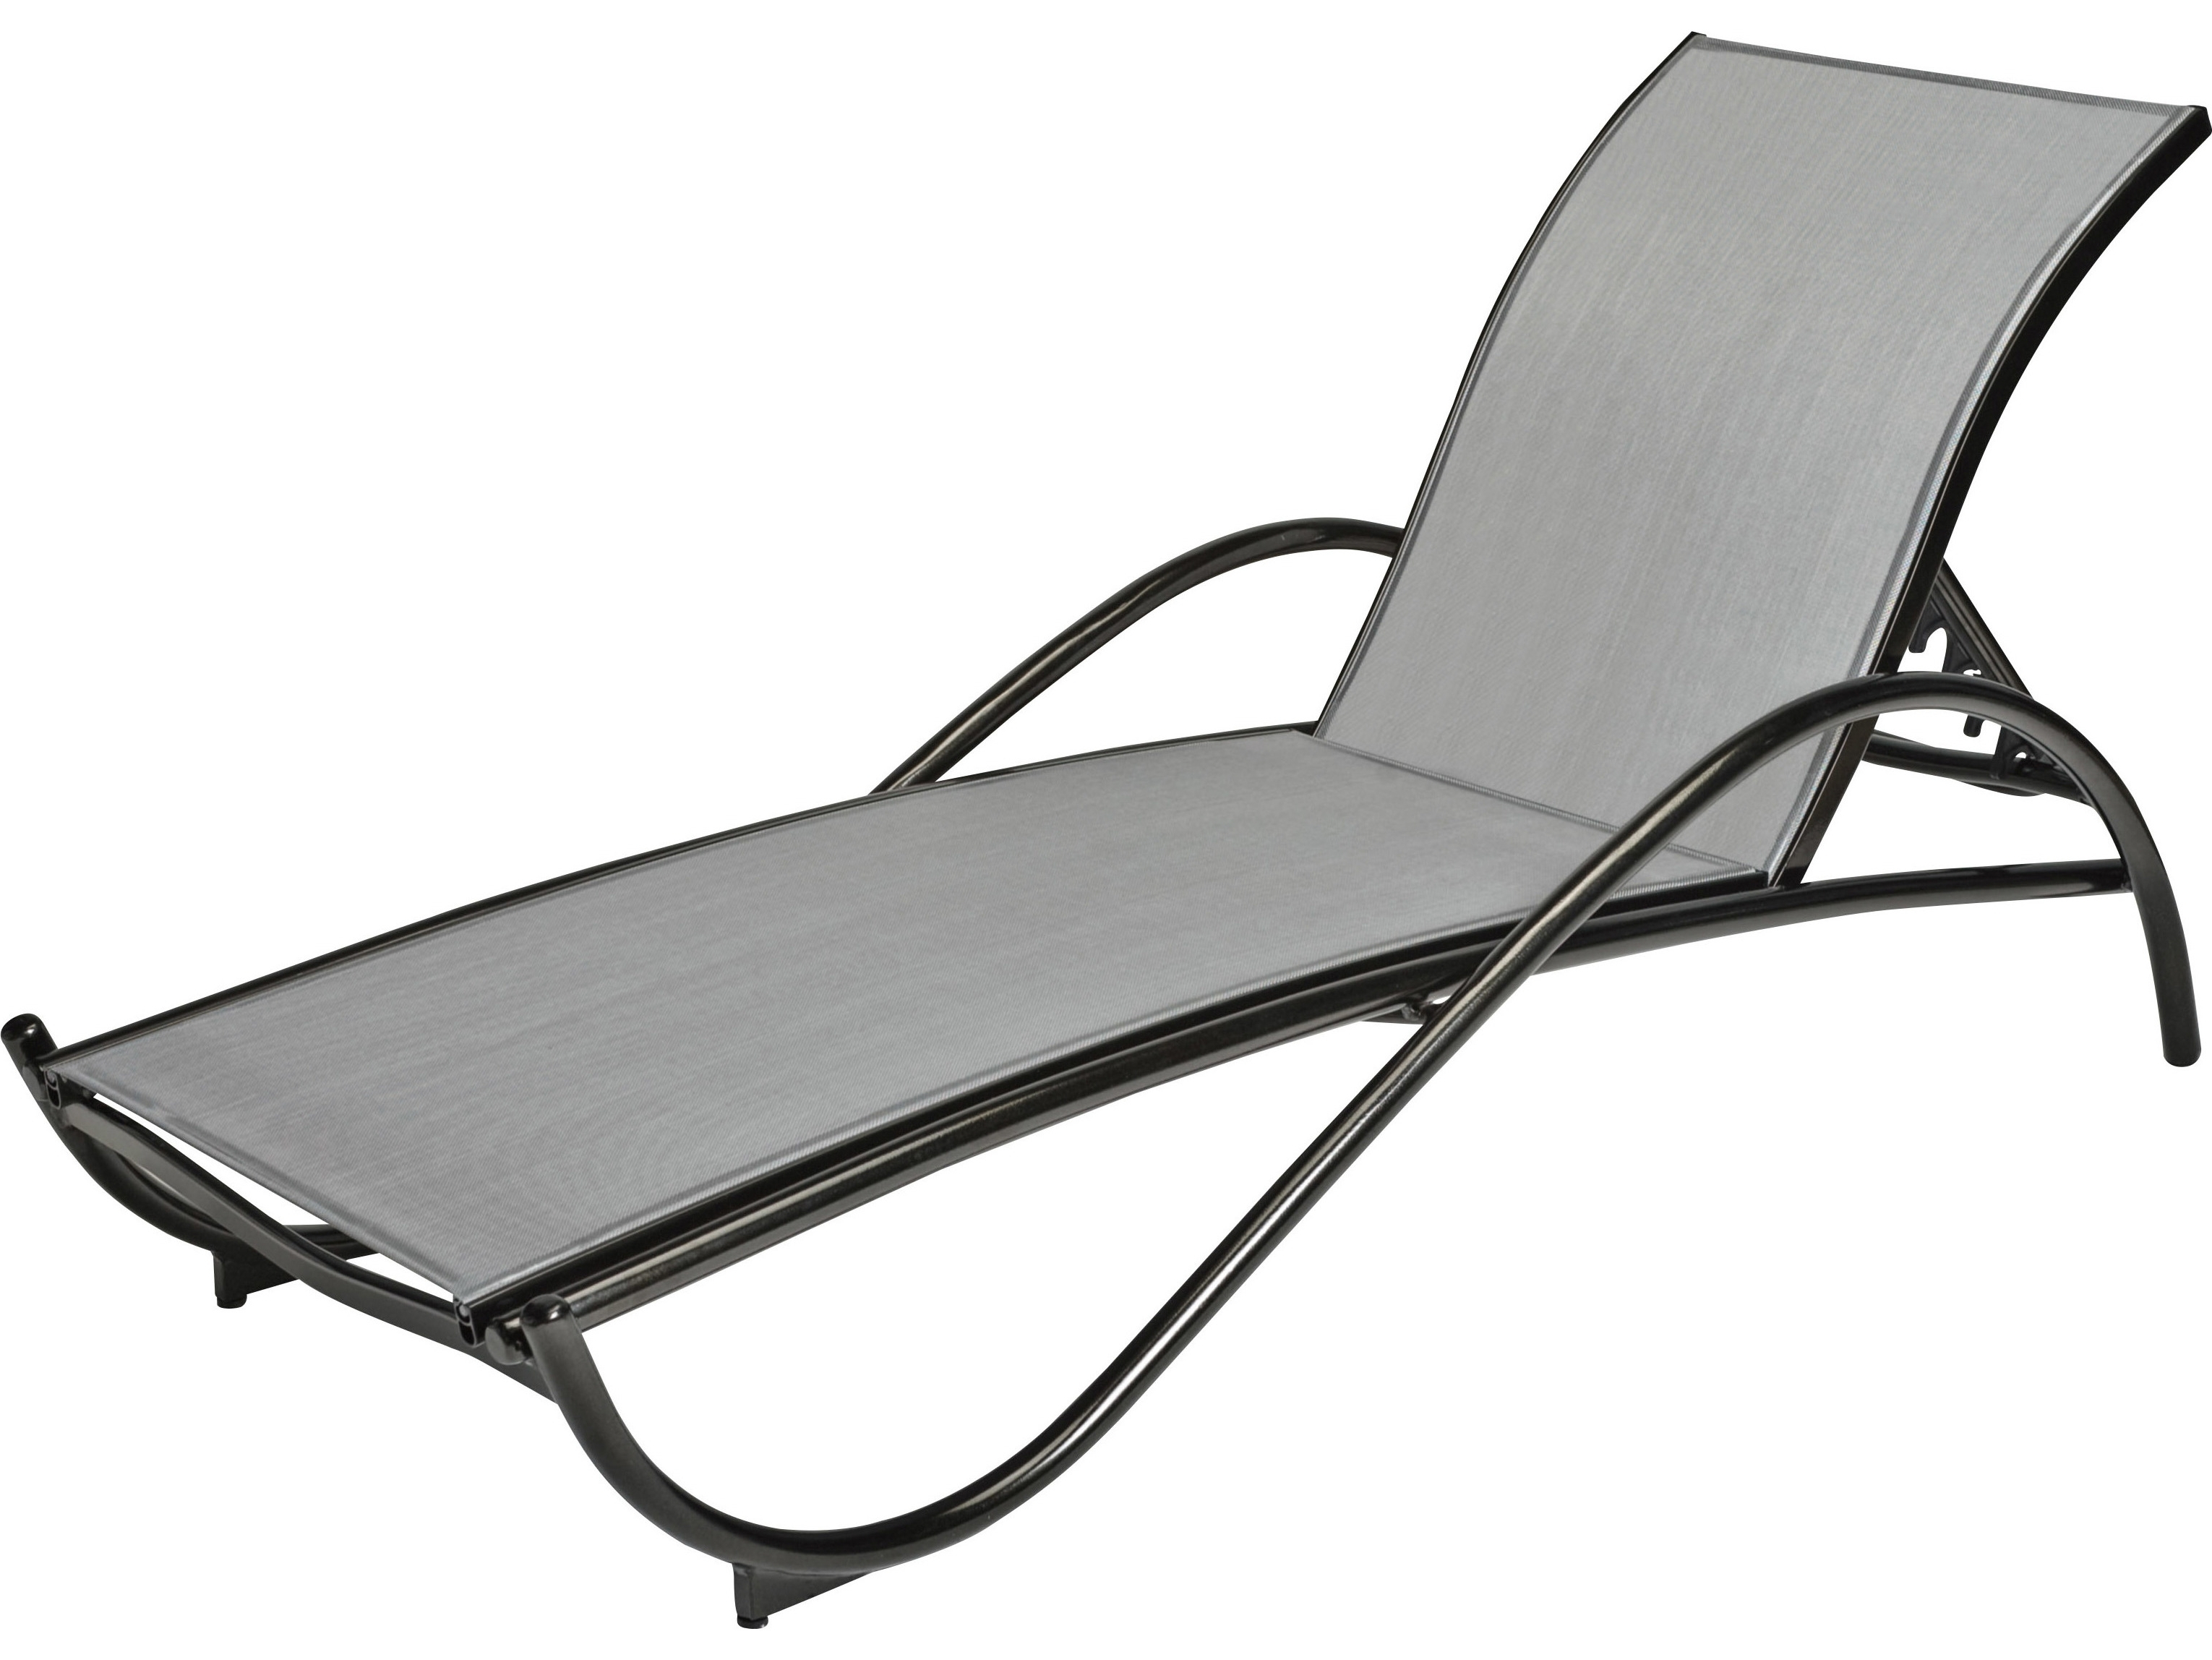 Most Popular Picture 4 Of 38 – Lounge Outdoor Chairs Elegant Woodard Tribeca Regarding Atlanta Chaise Lounge Chairs (View 7 of 15)